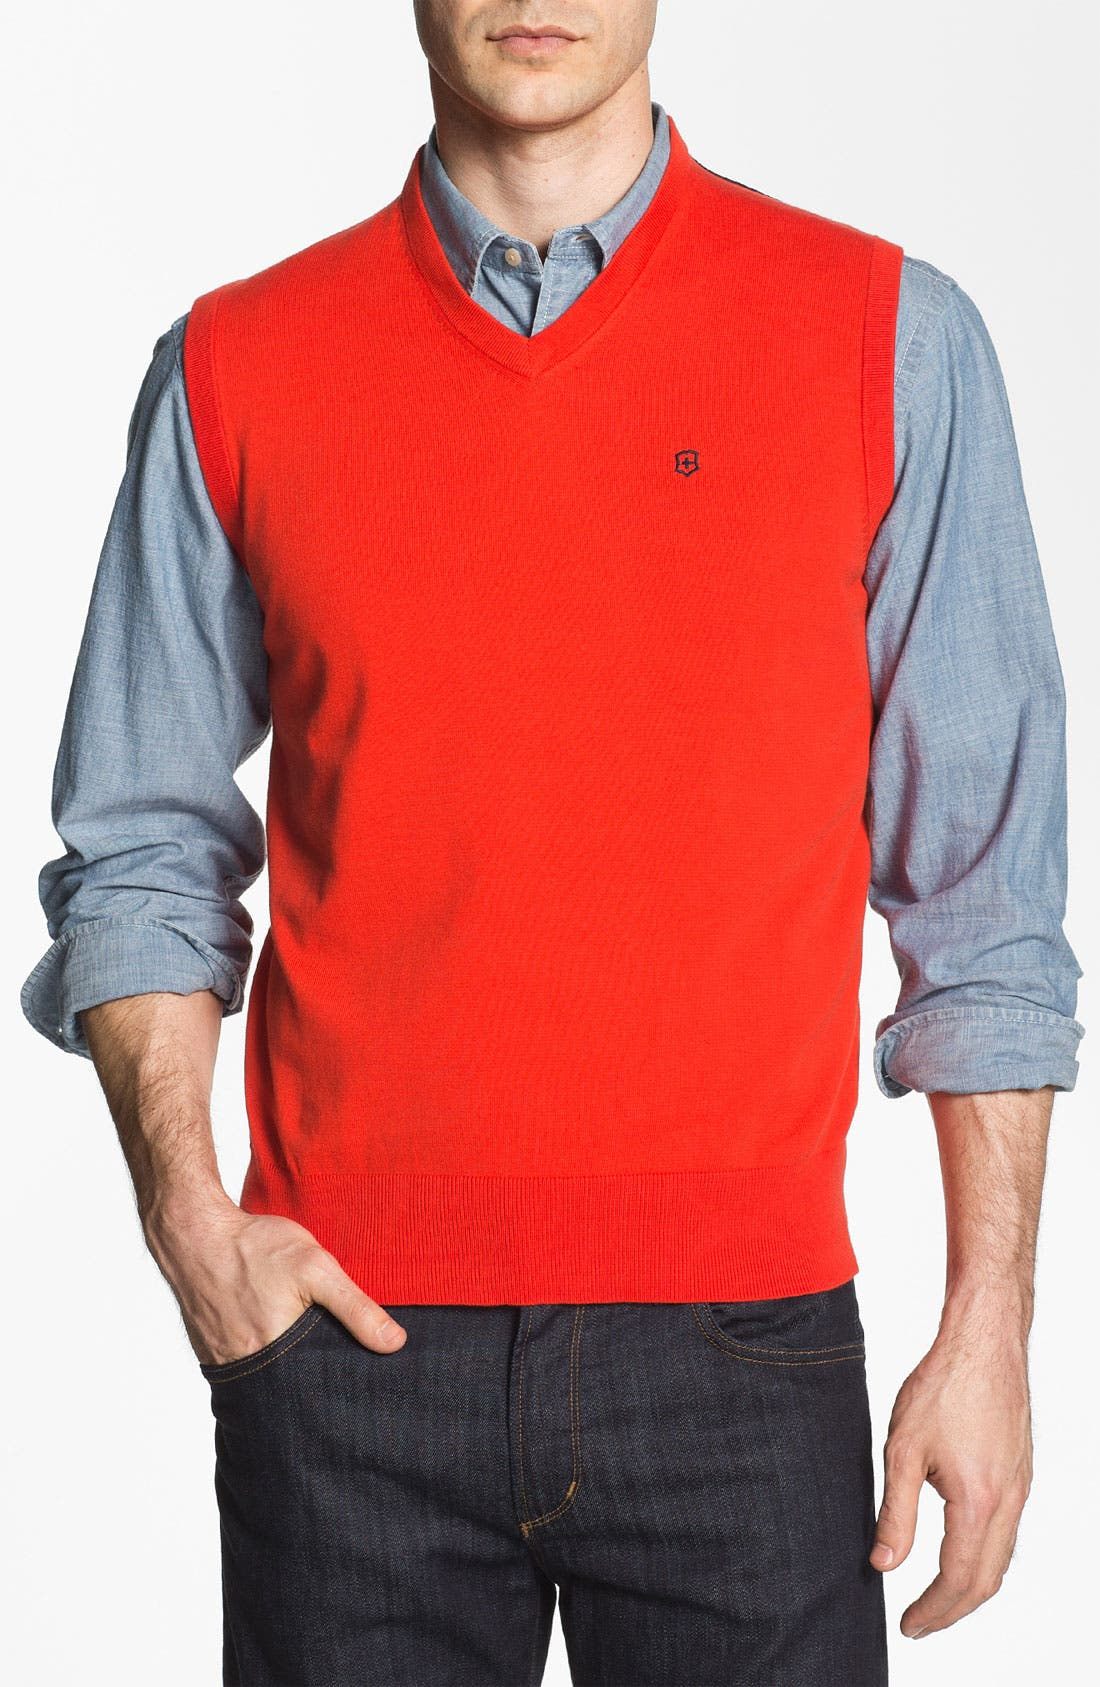 Main Image - Victorinox Swiss Army® 'Suisse' Tailored Fit Sweater Vest (Online Only)